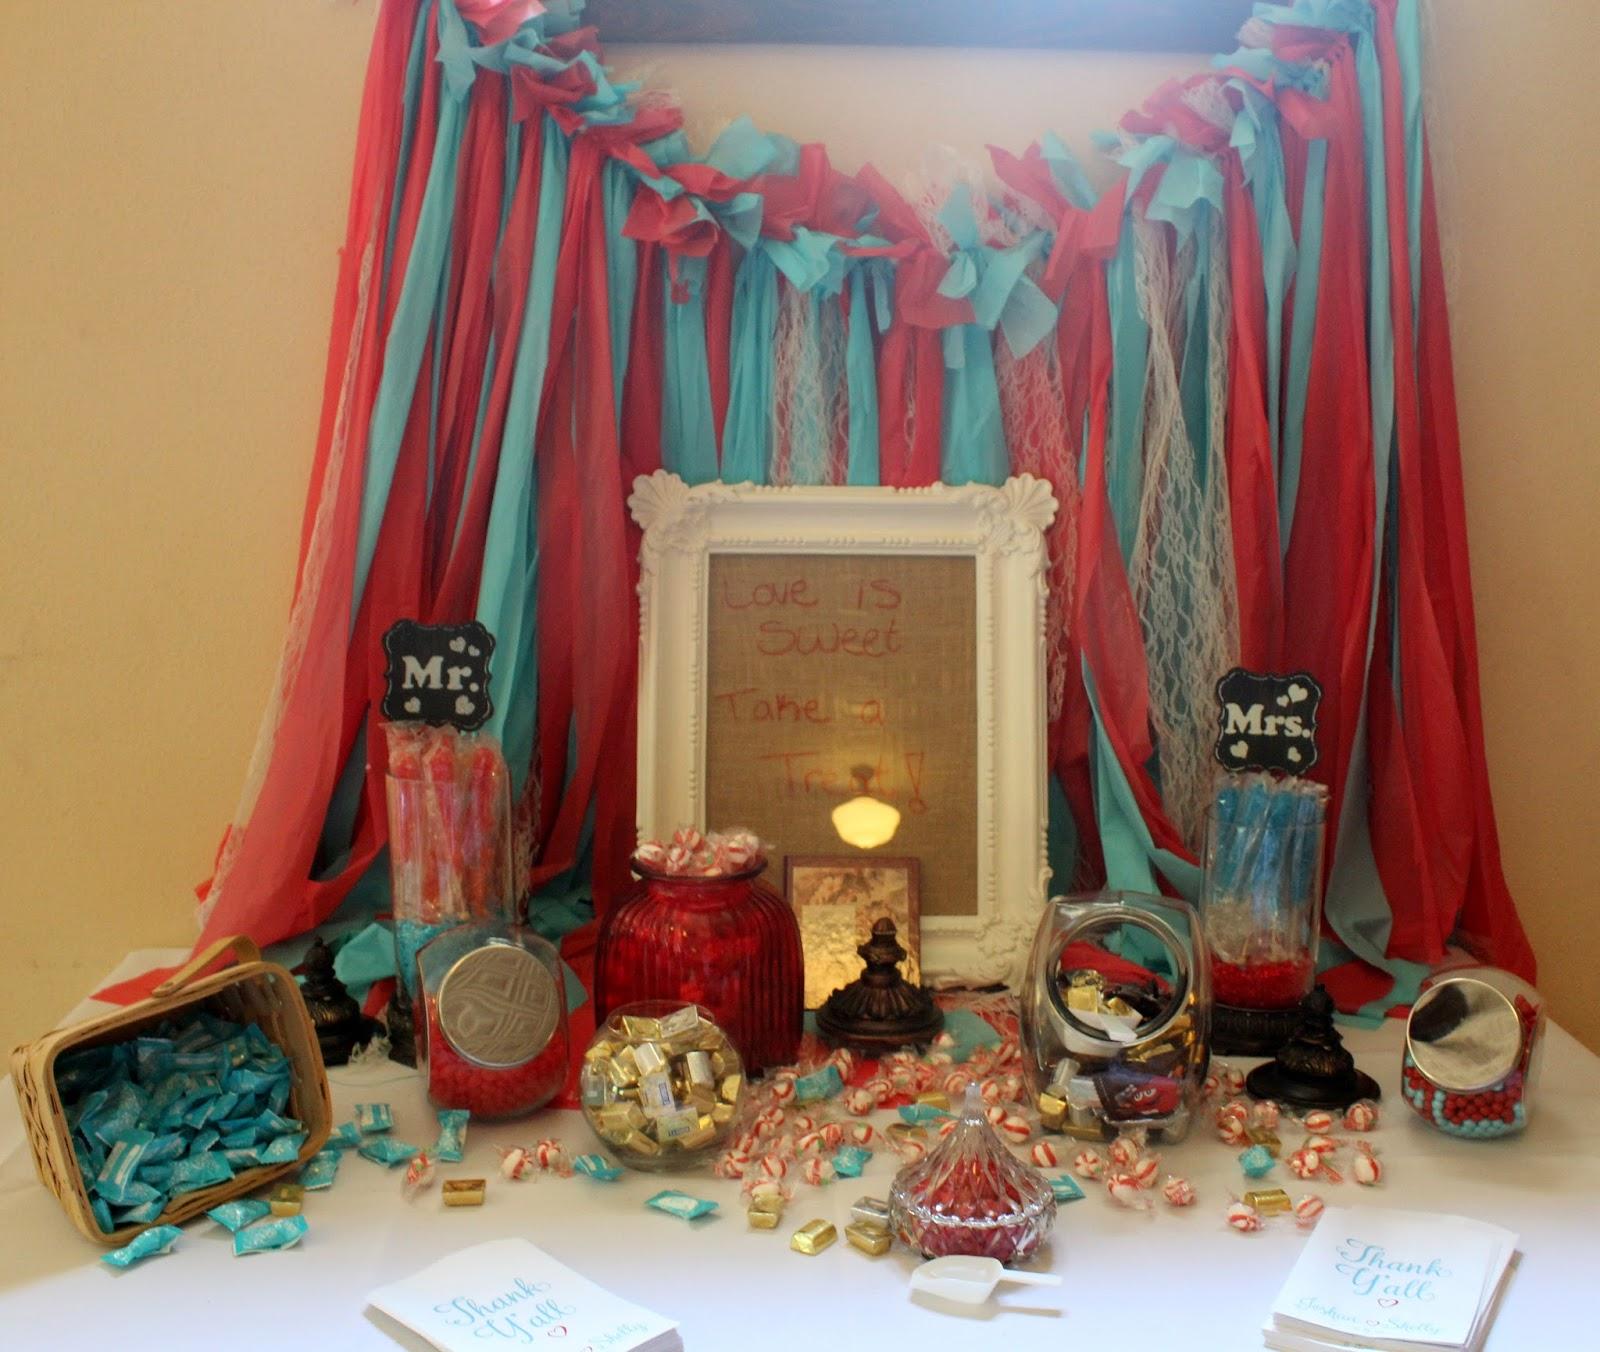 Turquoise And Red Wedding Ideas: Southern Blue Celebrations: RUSTIC RED & TURQUOISE WEDDING